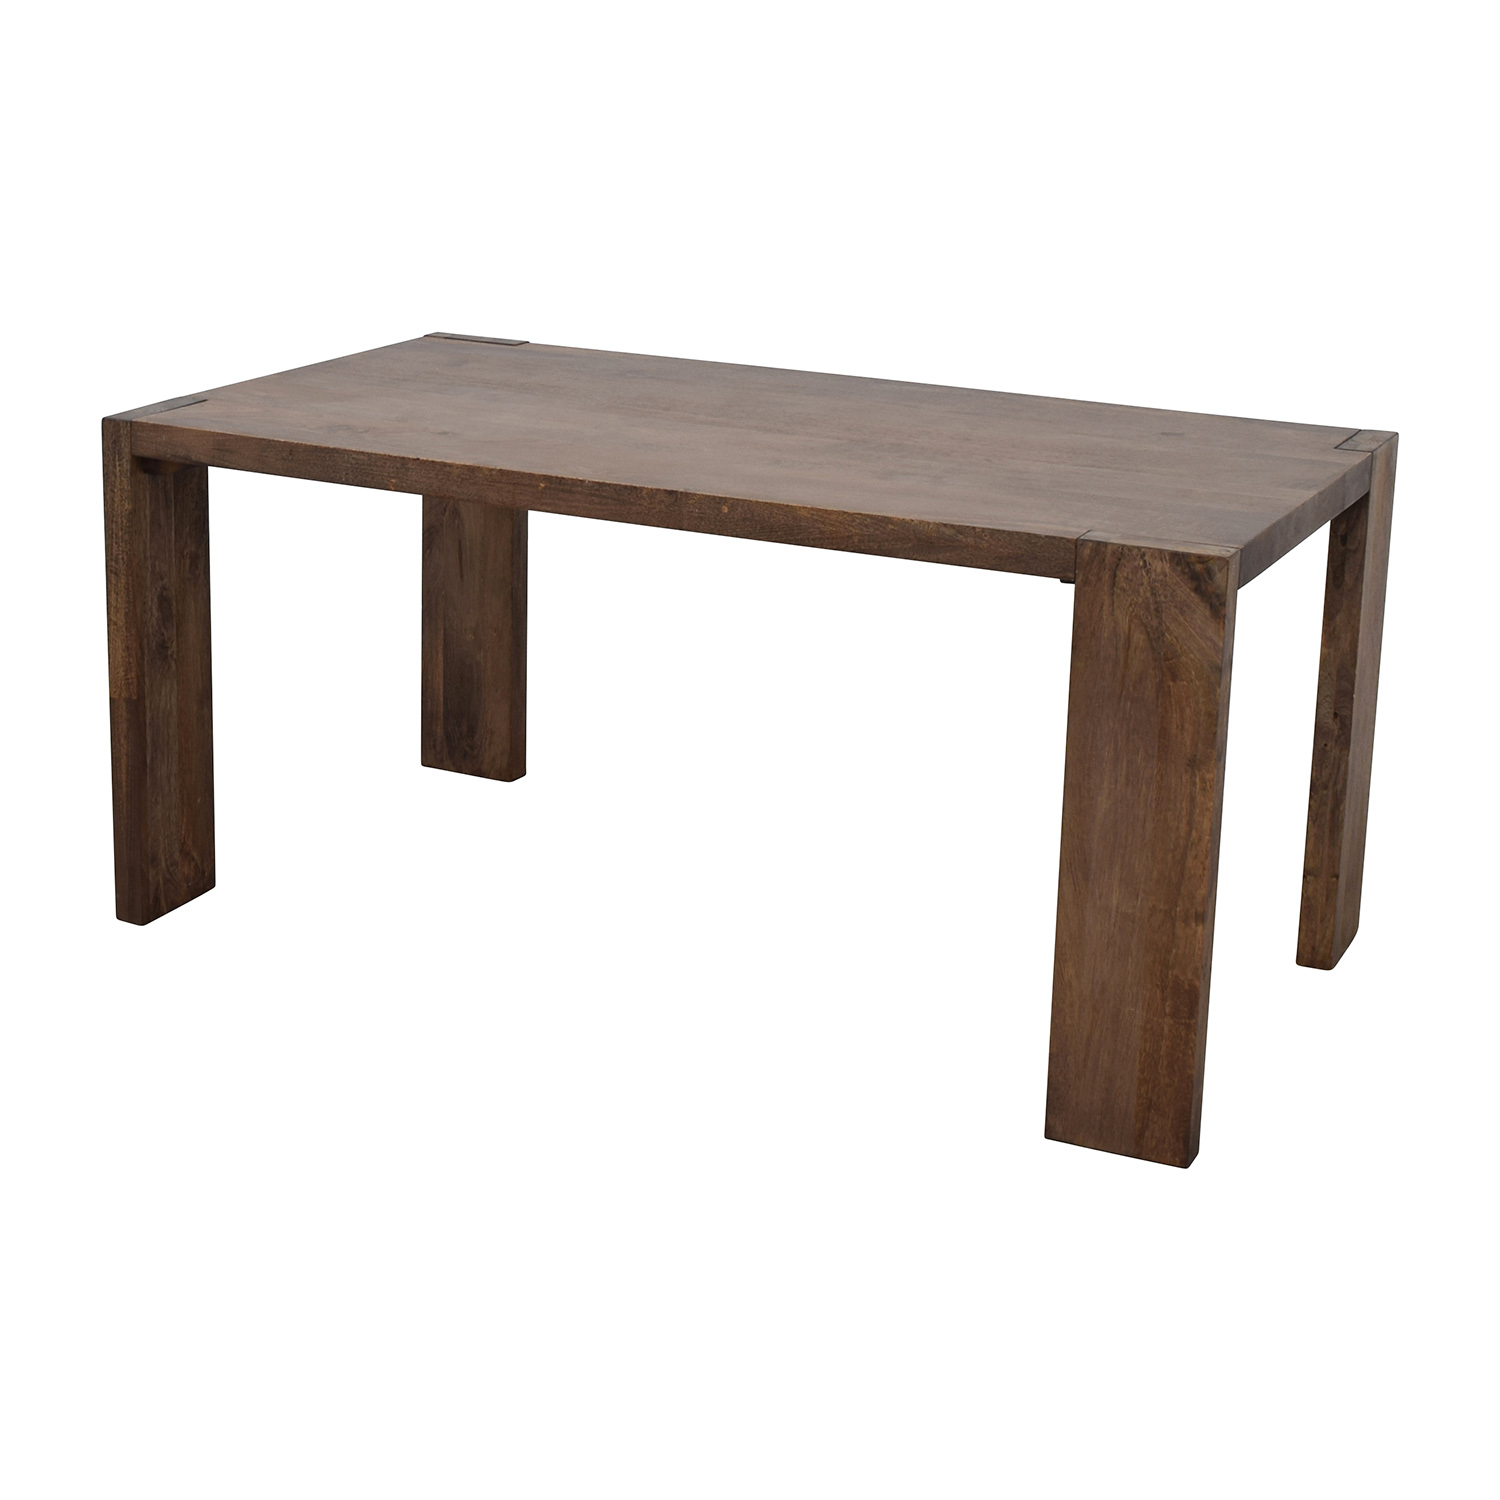 OFF CB2 CB2 Blox Dining Table Tables